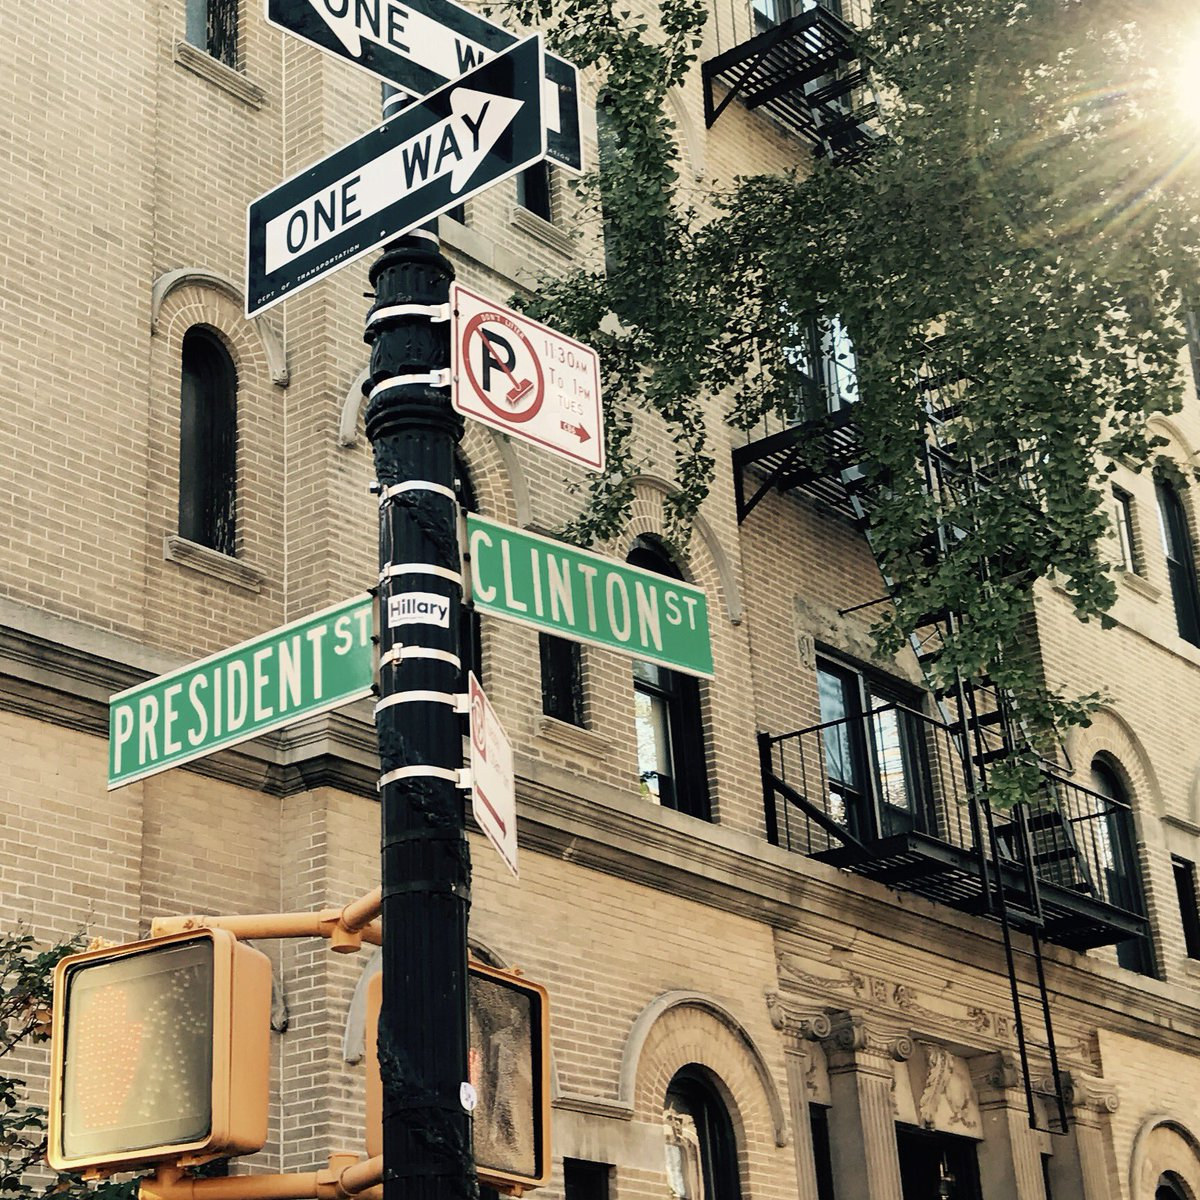 Intersection of President & Clinton where people are taking pics & giving each other hope. #Brooklyn #WereWithHer https://t.co/vlZzNbRbET